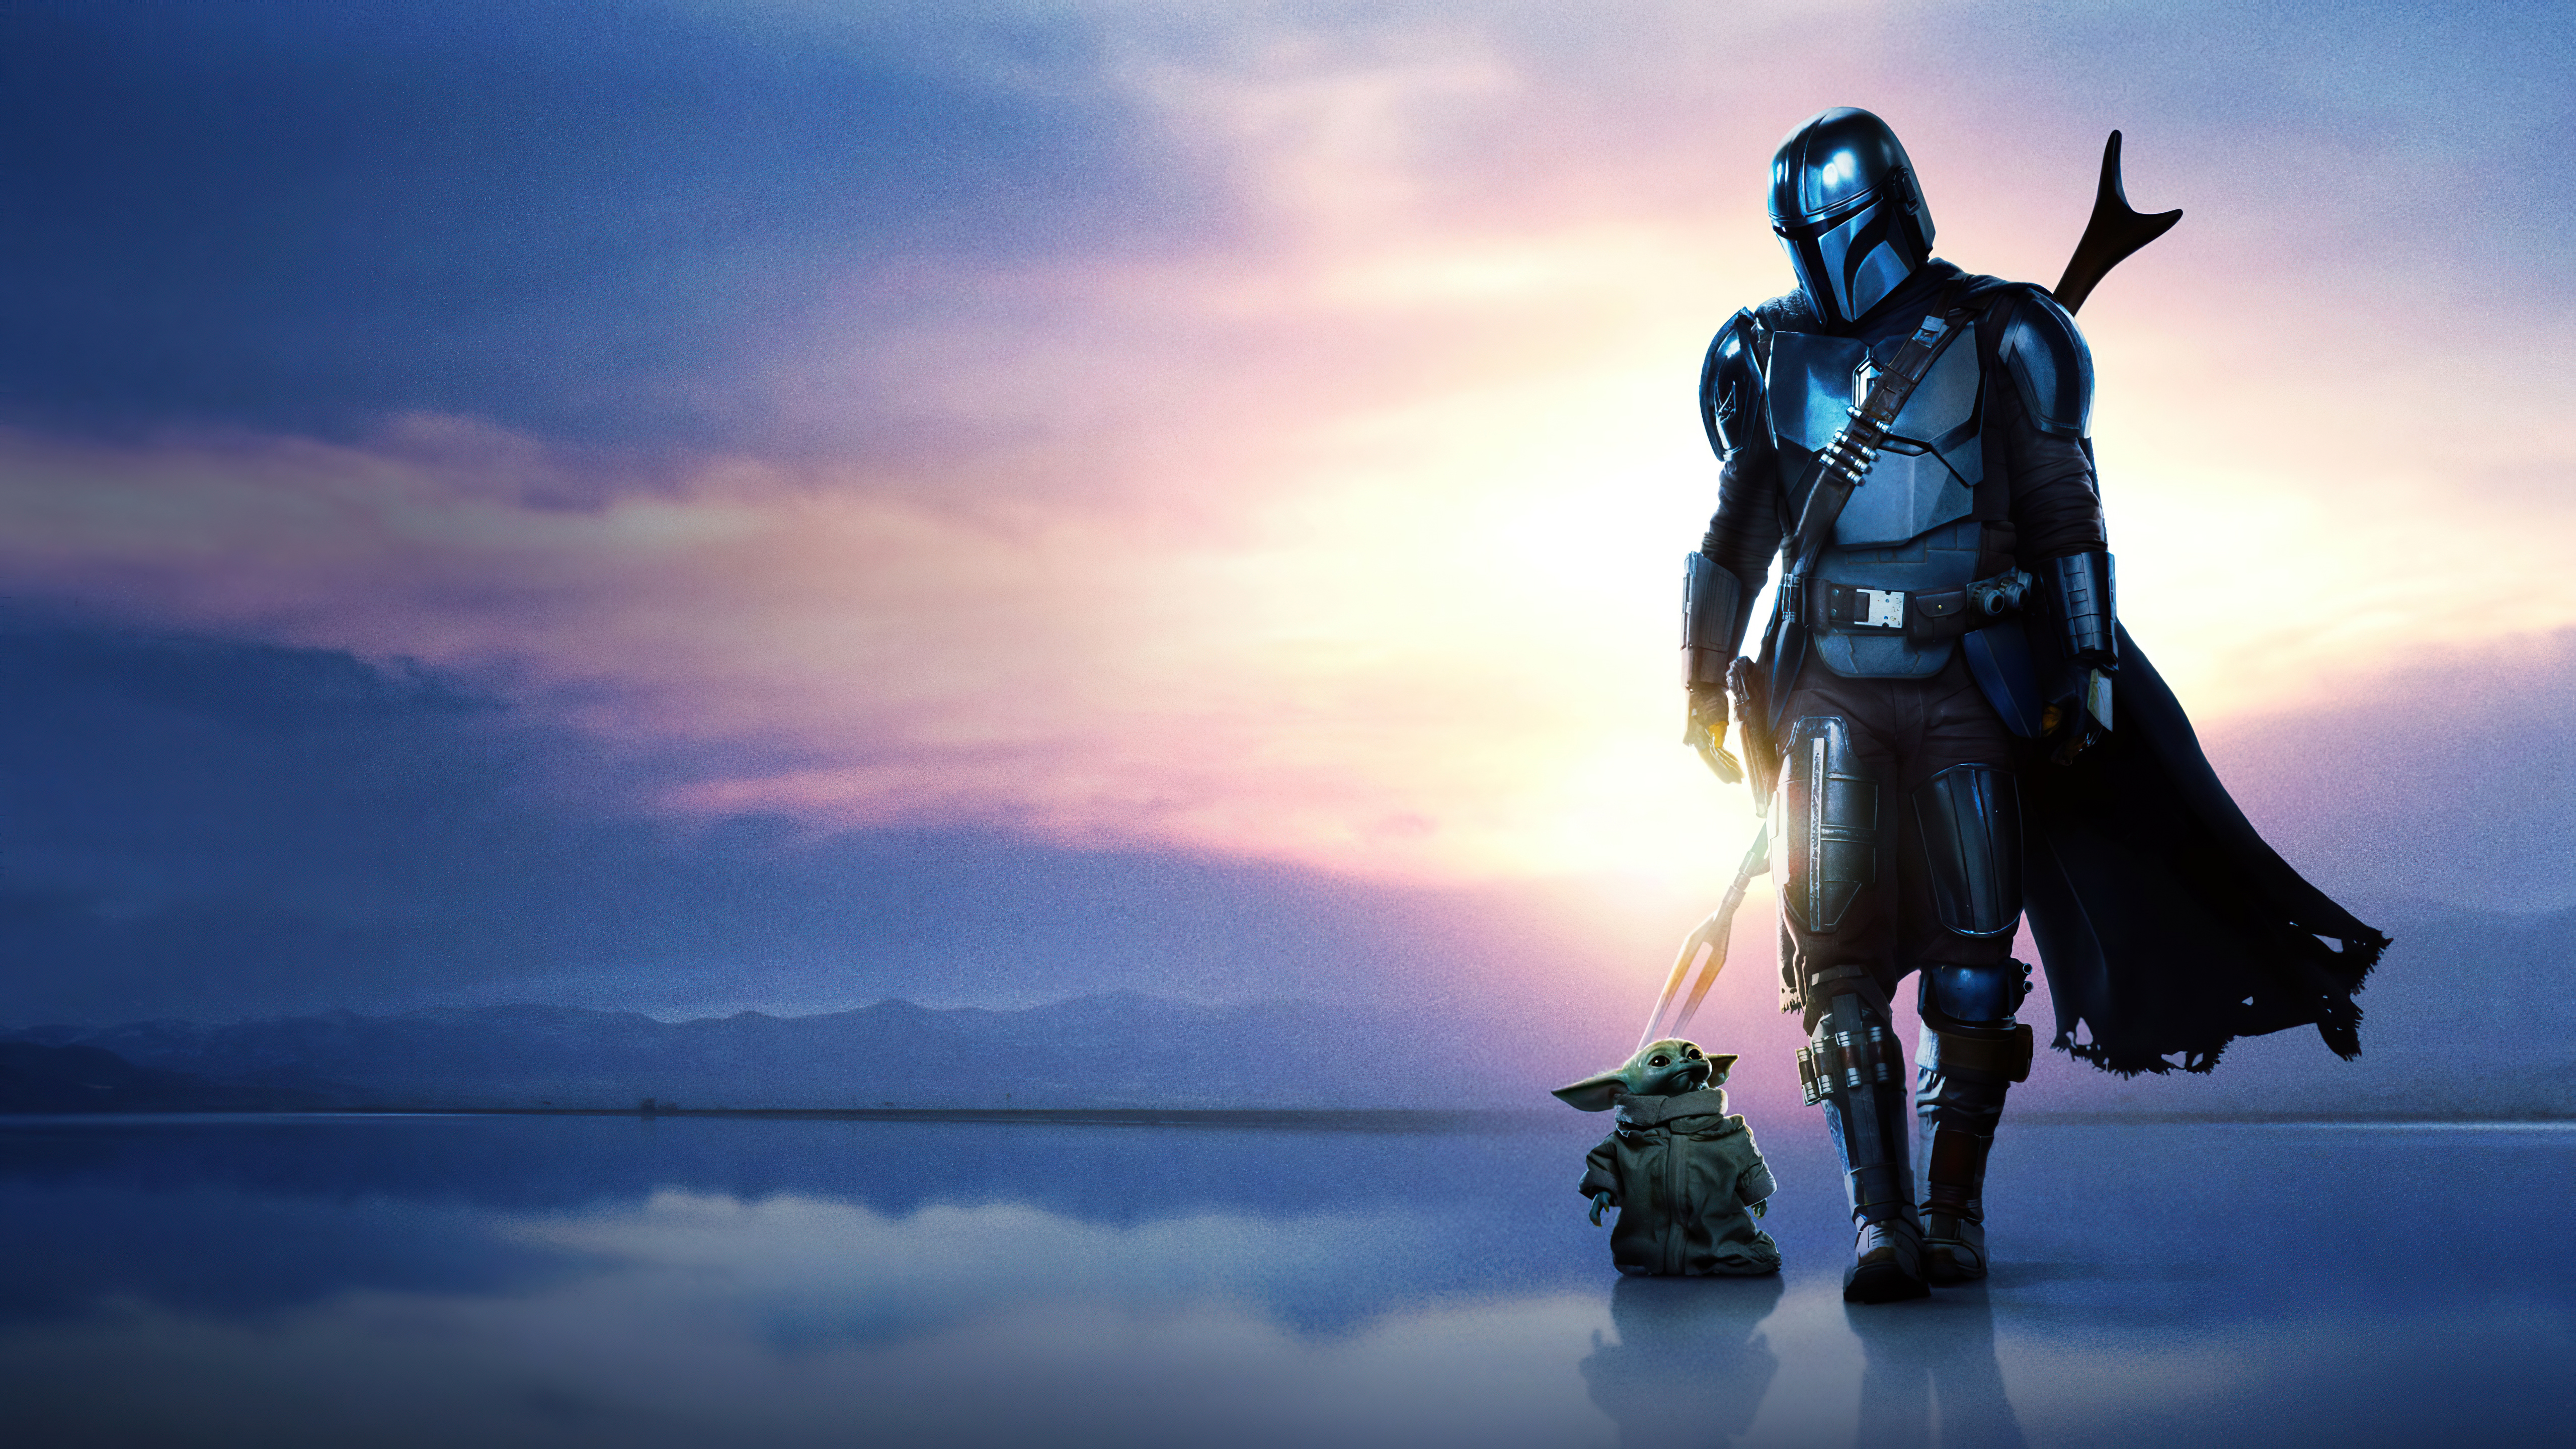 The Mandalorian Season 2 Tv Series Hd Tv Shows 4k Wallpapers Images Backgrounds Photos And Pictures